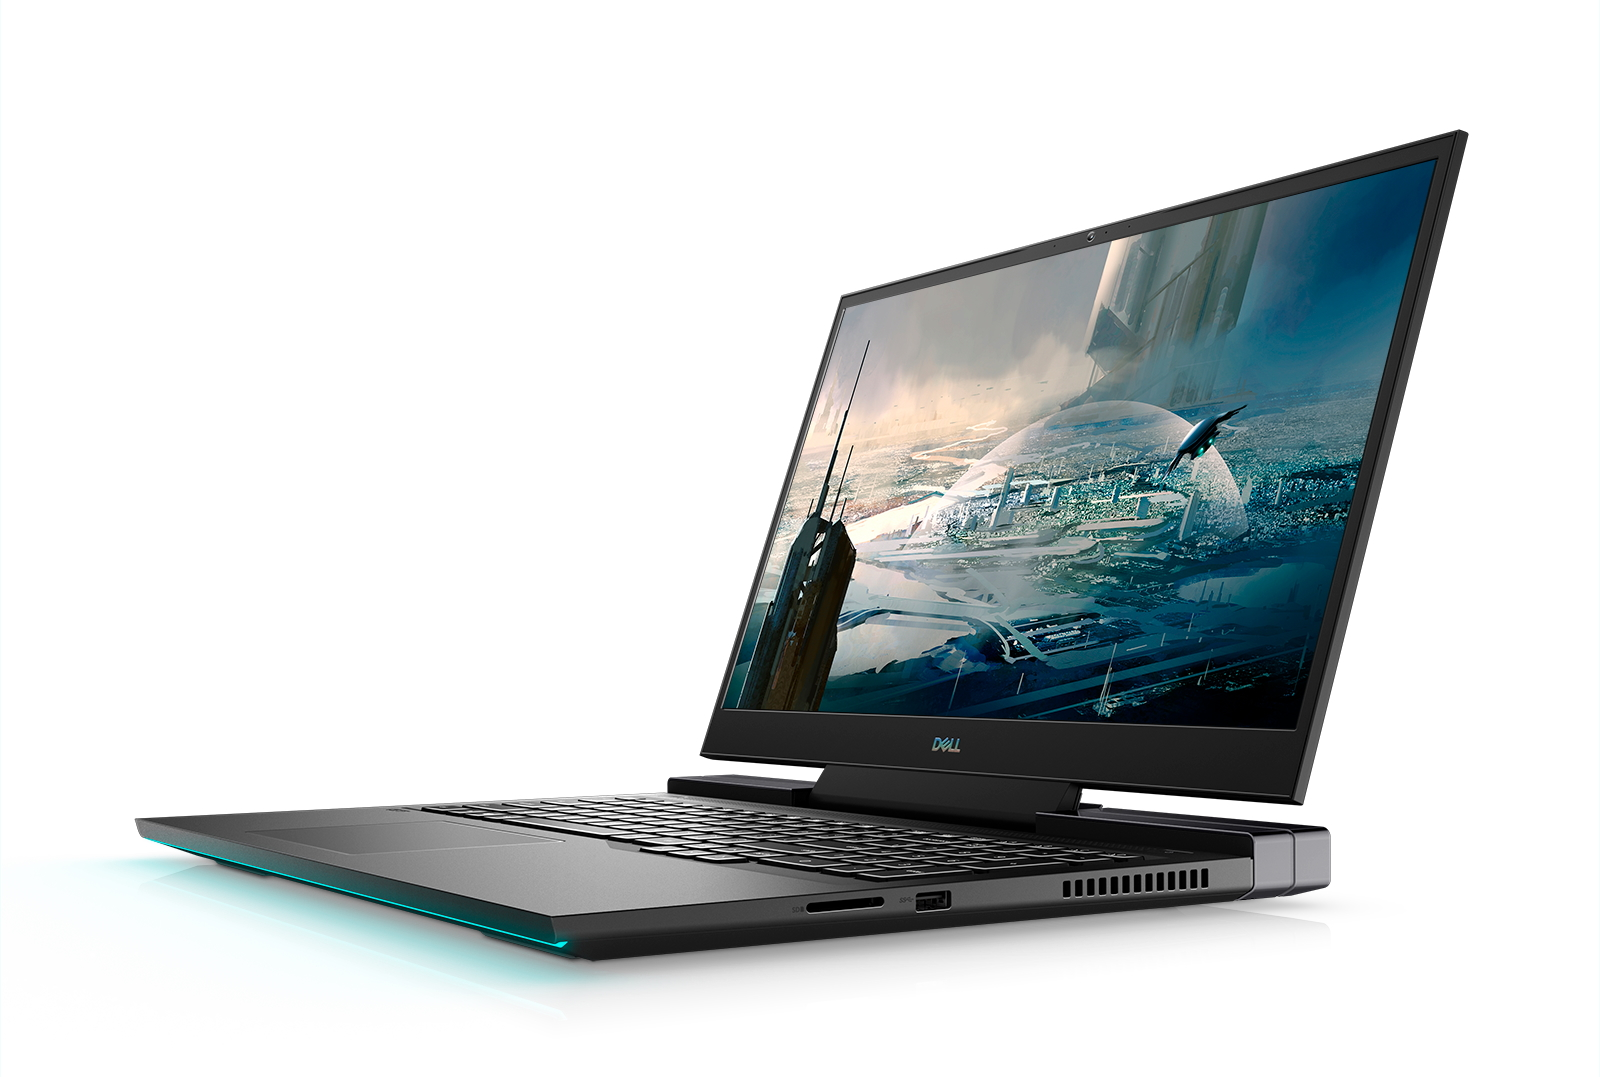 Dell G7 17 Powerful 17 Inch Gaming Laptop Receives An Eye Catching Redesign Up To A Core I9 10980hk Nvidia Geforce Rtx 2070 Max Q And Optional 300 Hz Ips Or 4k Oled Displays Available